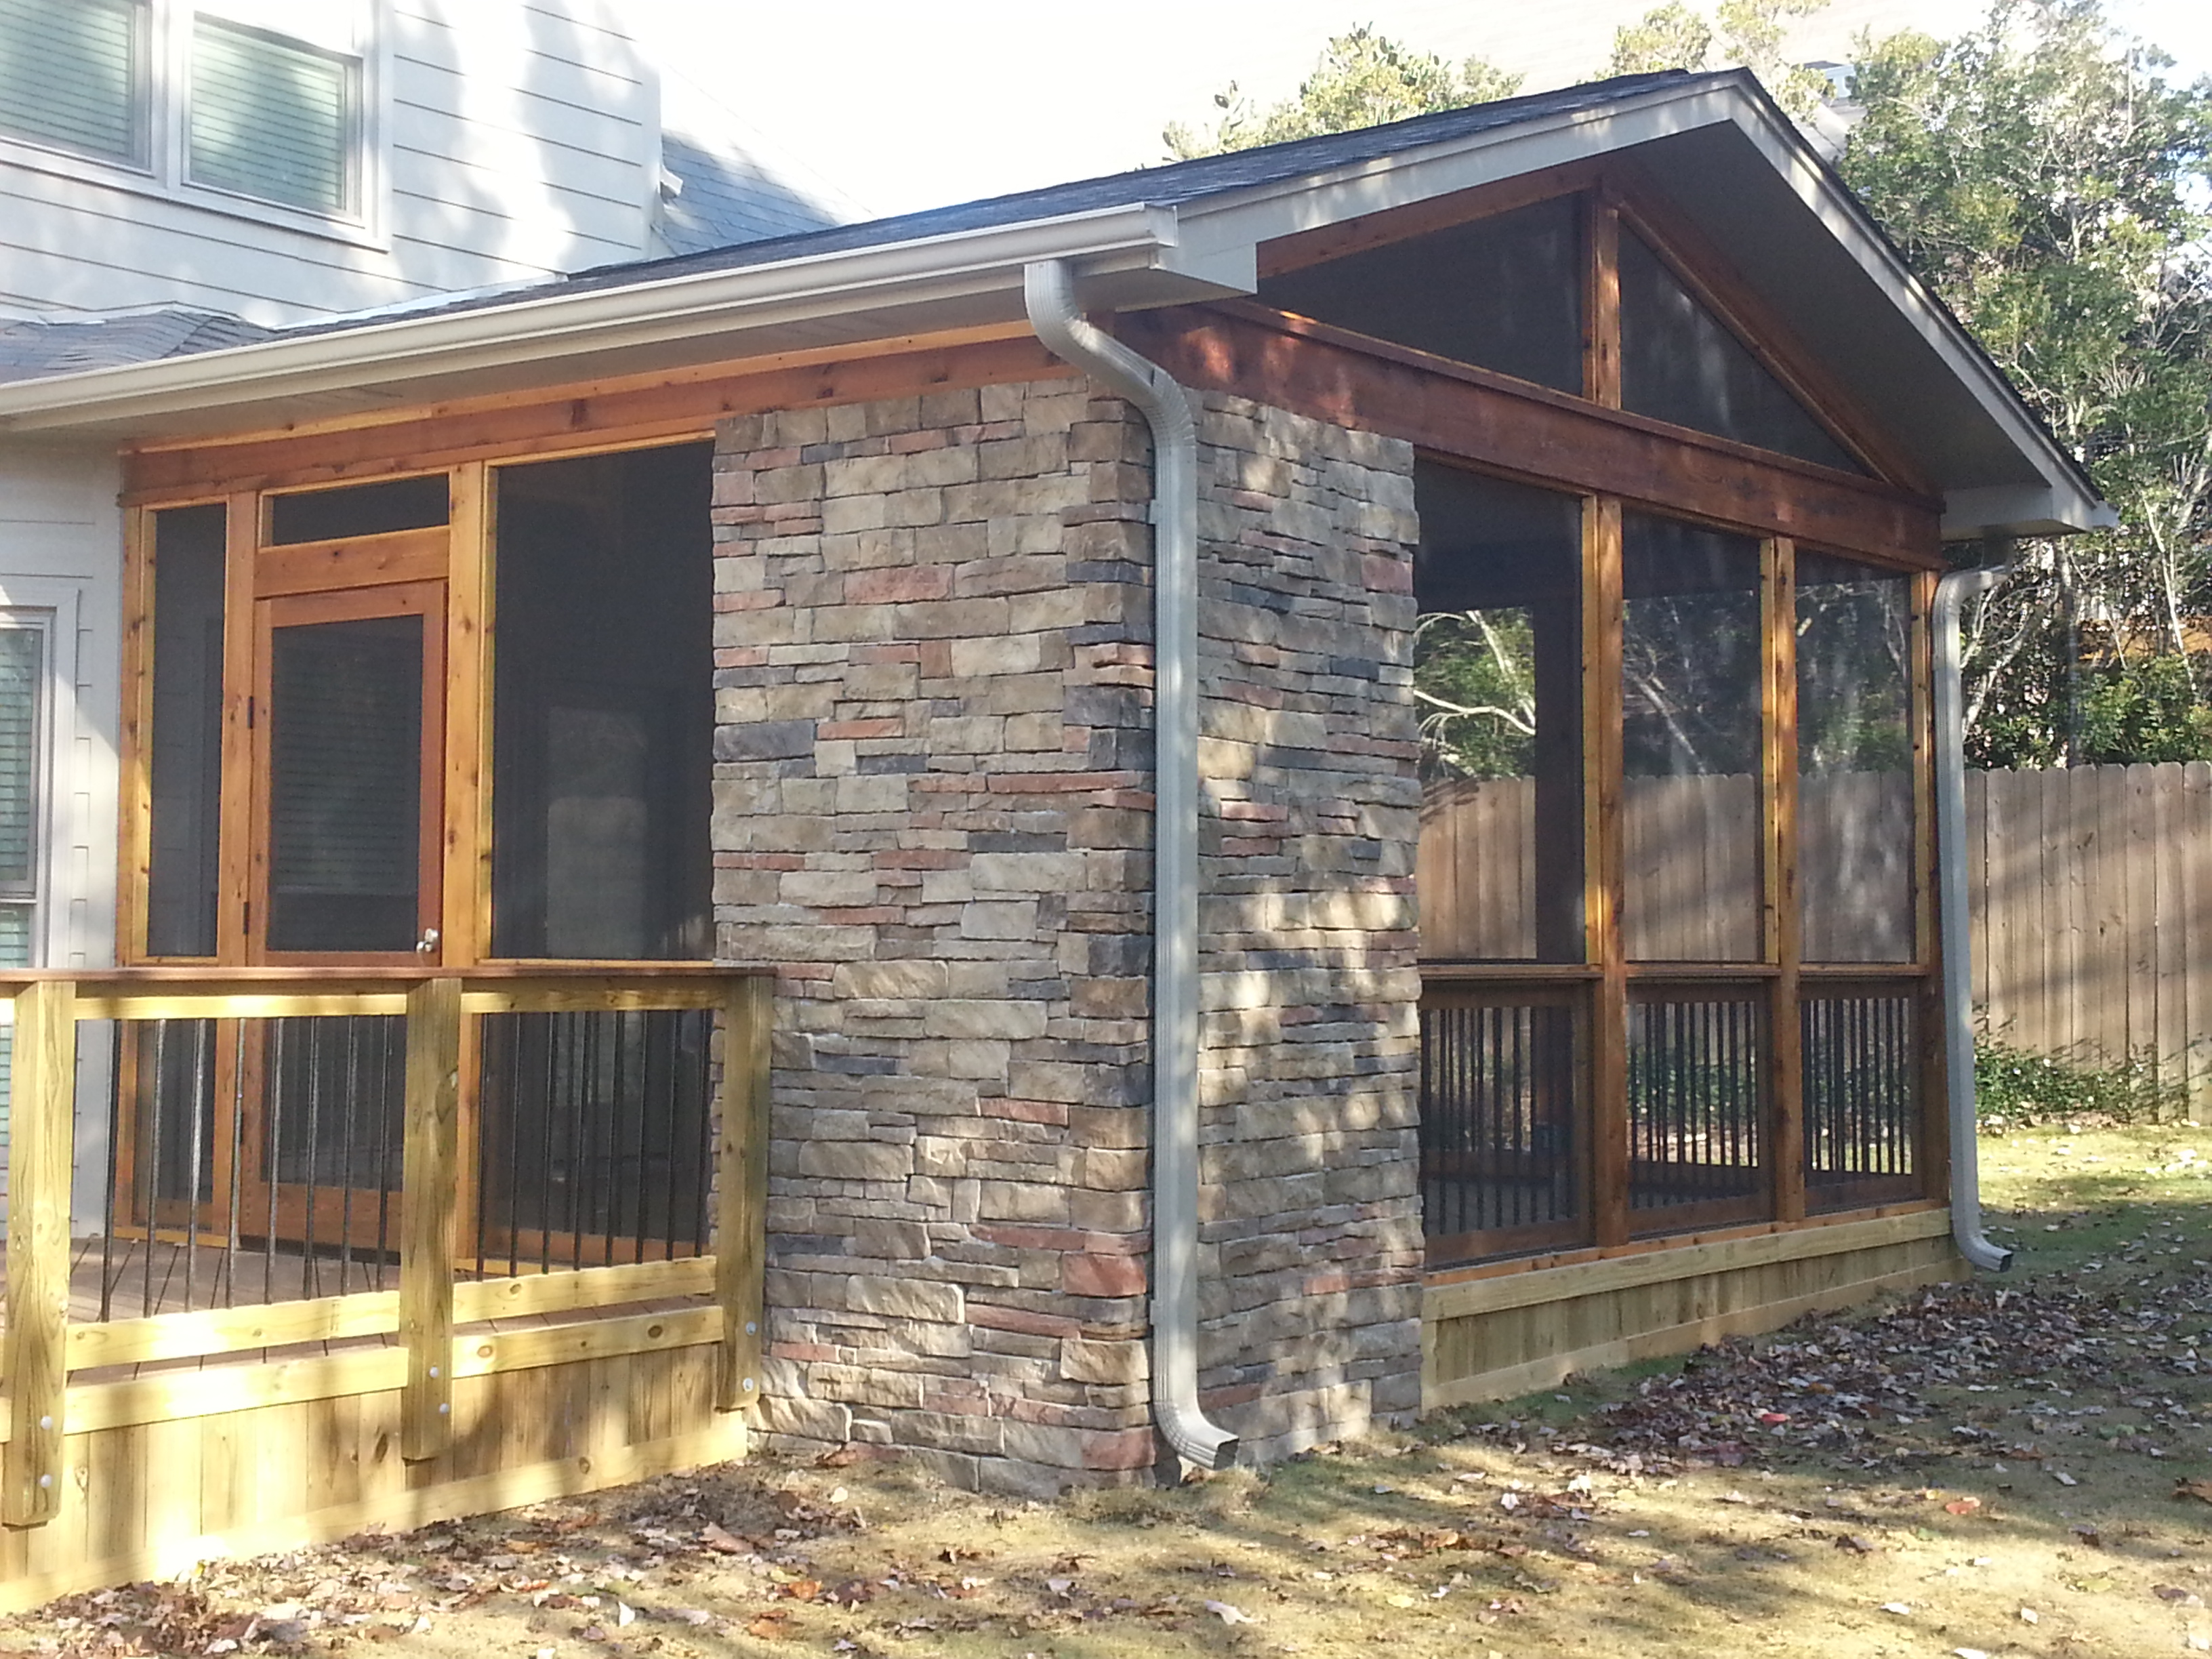 along together start your listing of home outdoor olathe how a want at ideas fireplace flames screened district town porch acquire you with on construct outside analyze before ks design blog to look ll an